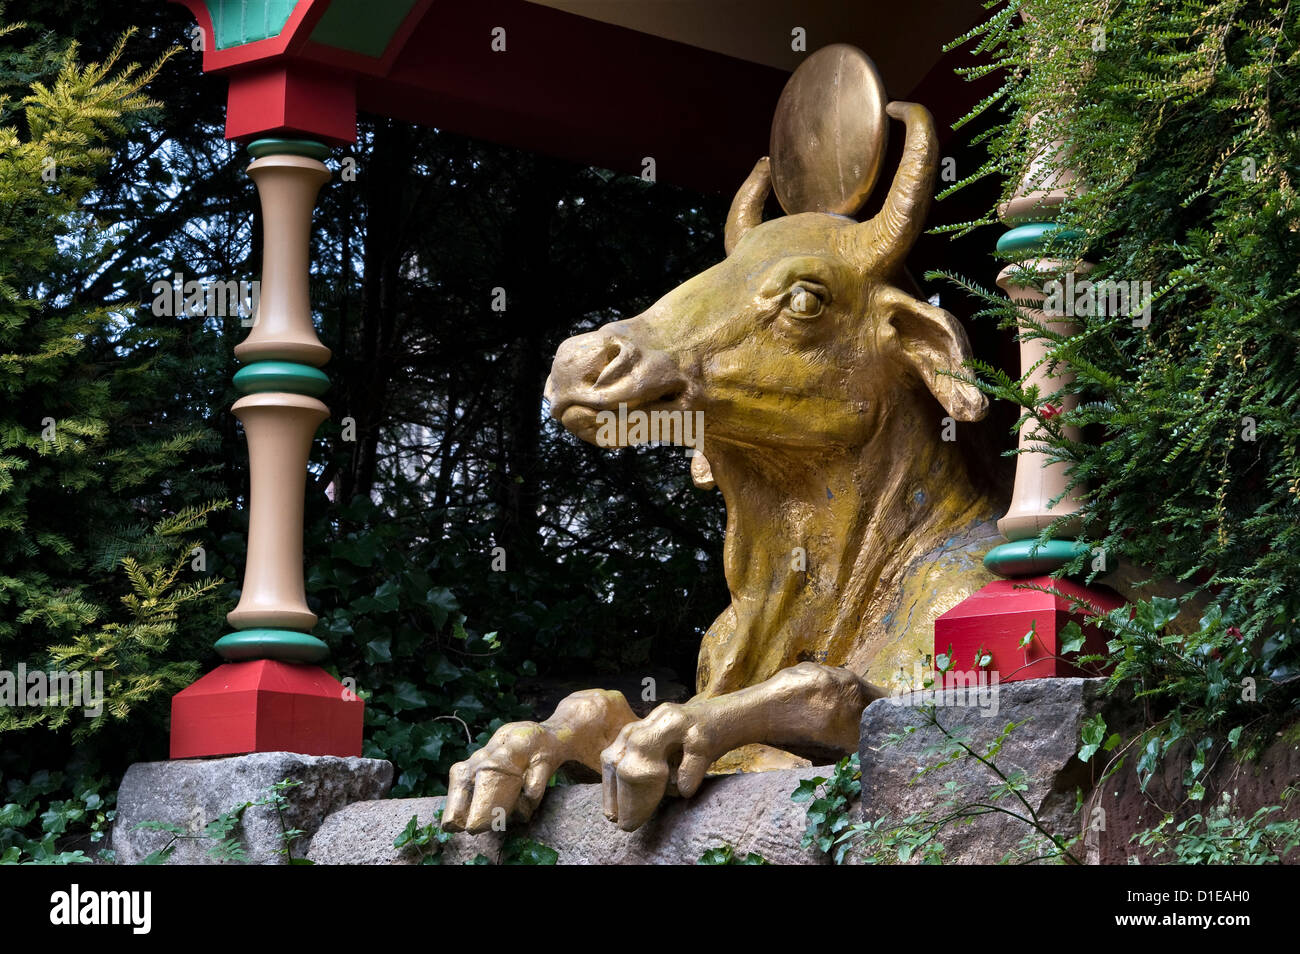 Biddulph Grange Garden, Staffordshire, UK. The Golden Ox or Calf in the part of the garden known as 'China' - Stock Image